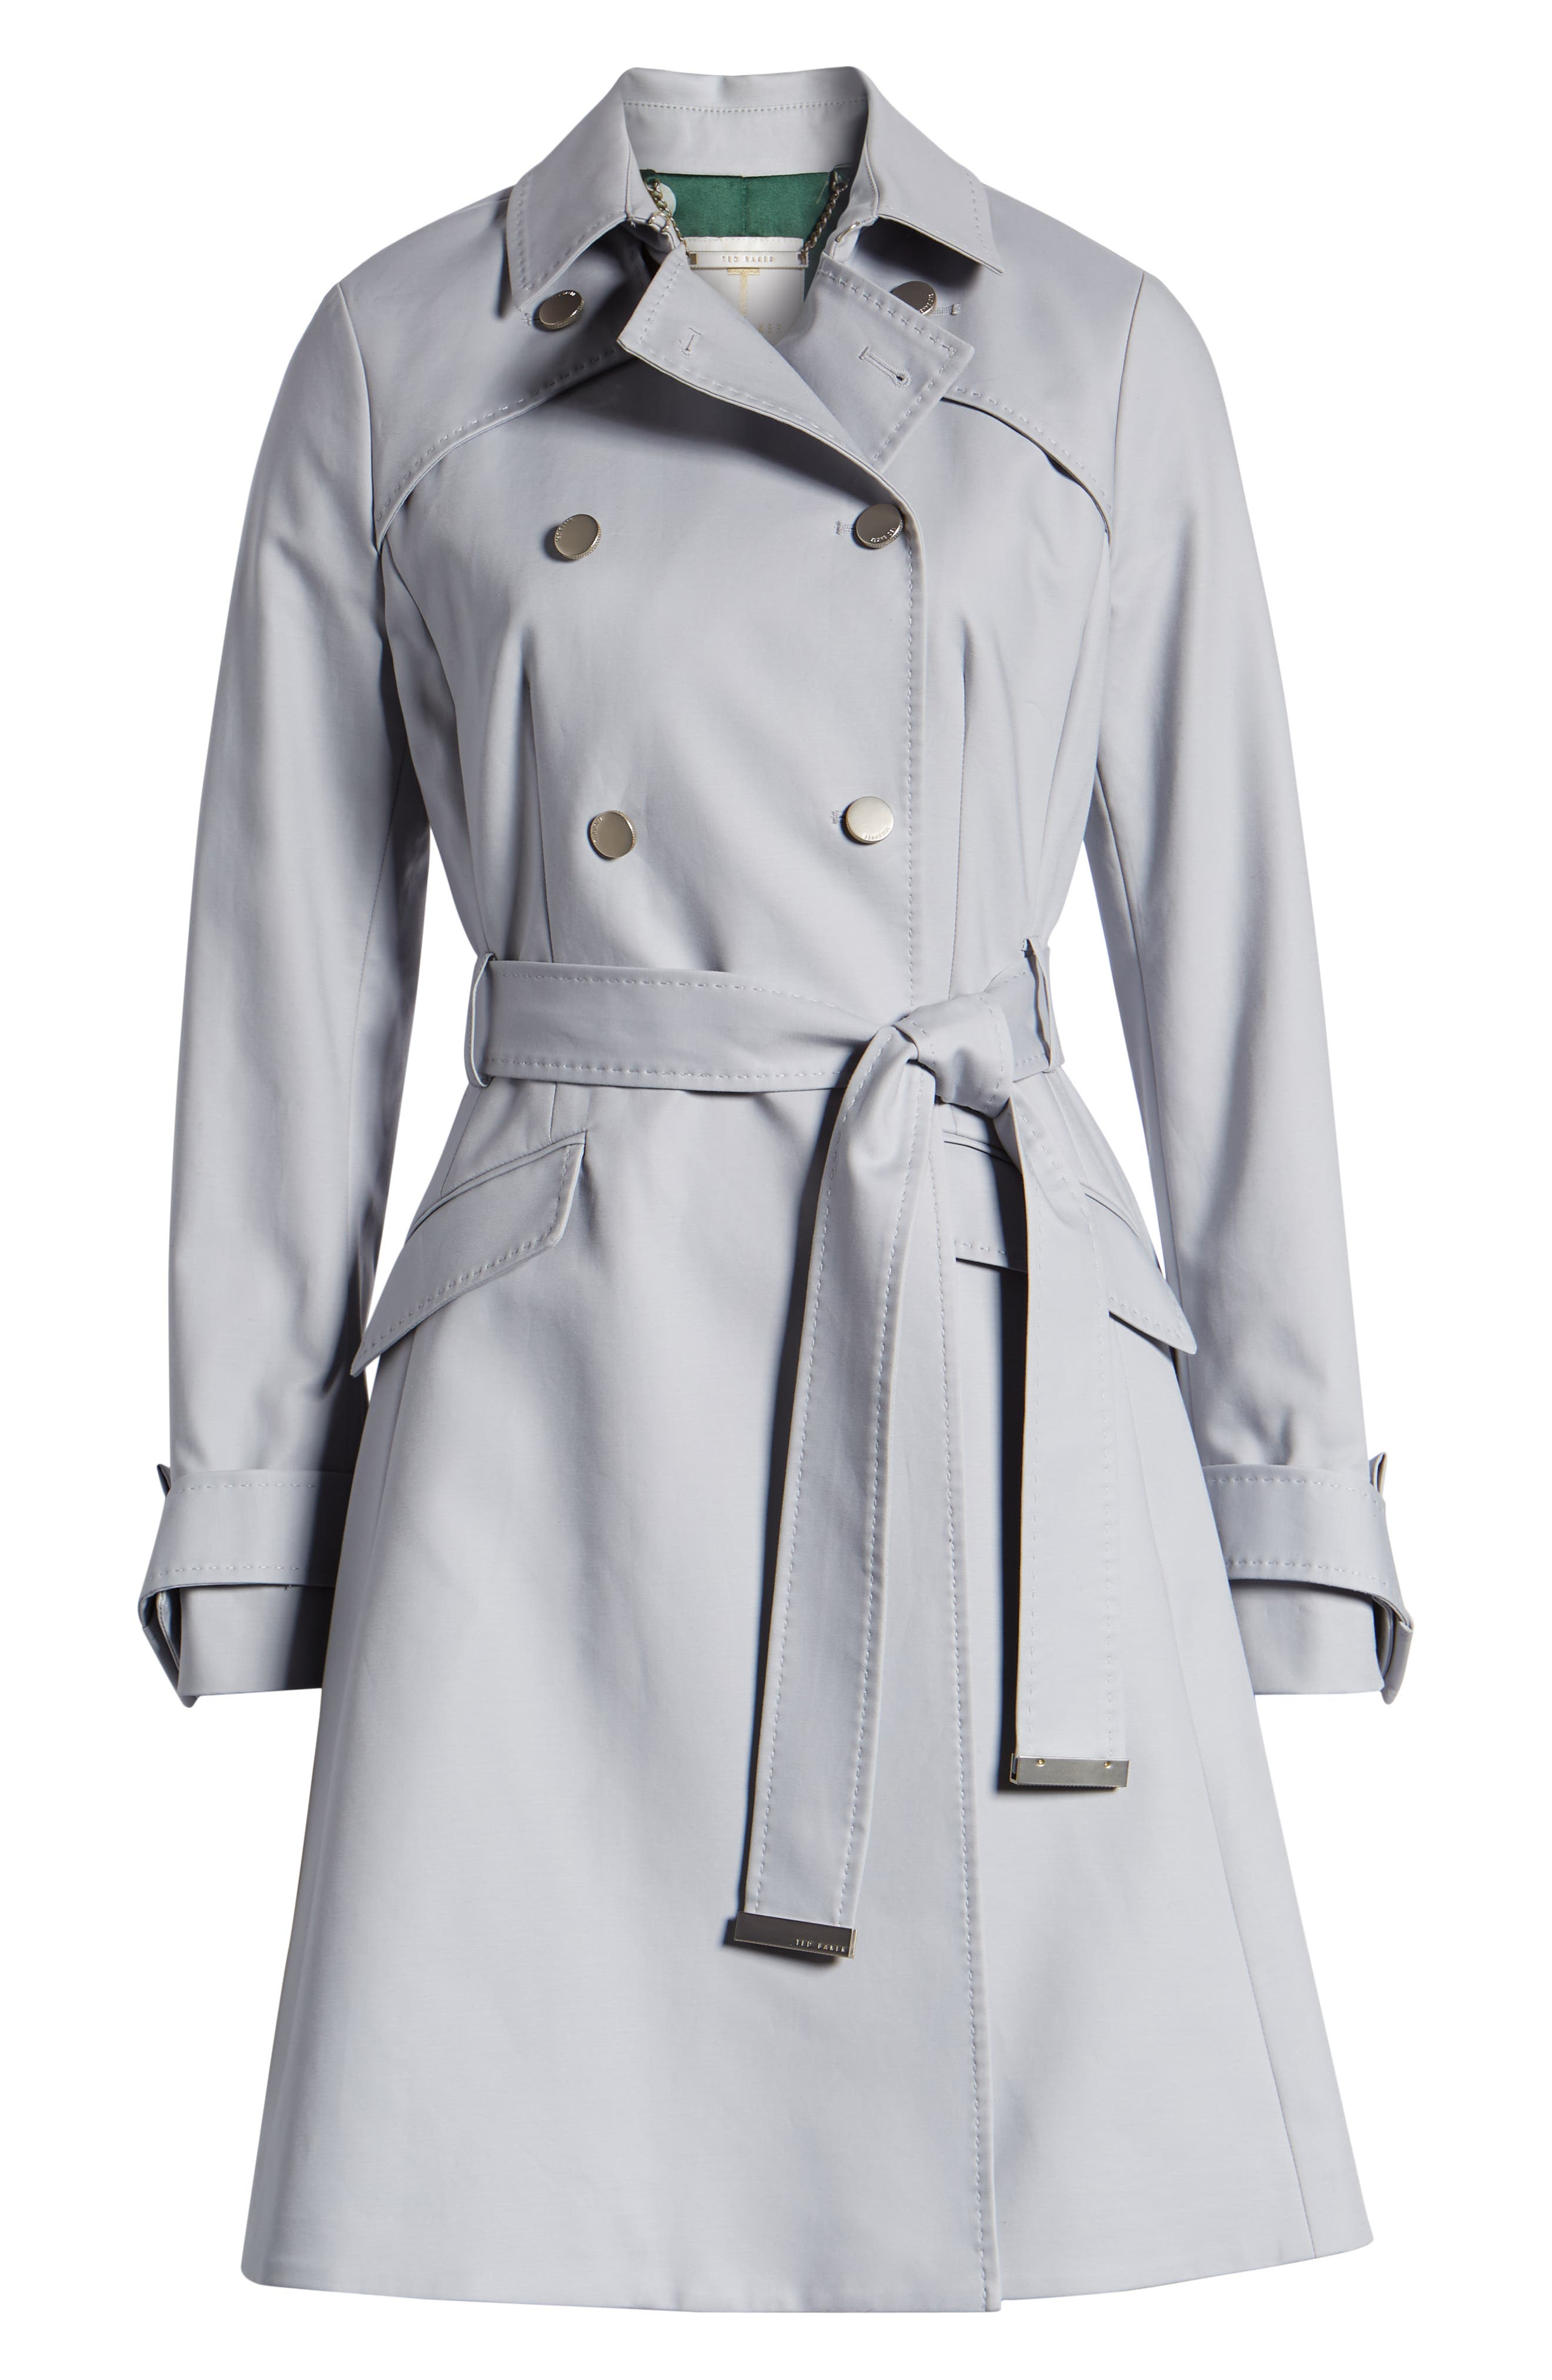 TED BAKER LONDON, Tie Cuff Detail Trench Coat, Alternate thumbnail 6, color, GREY